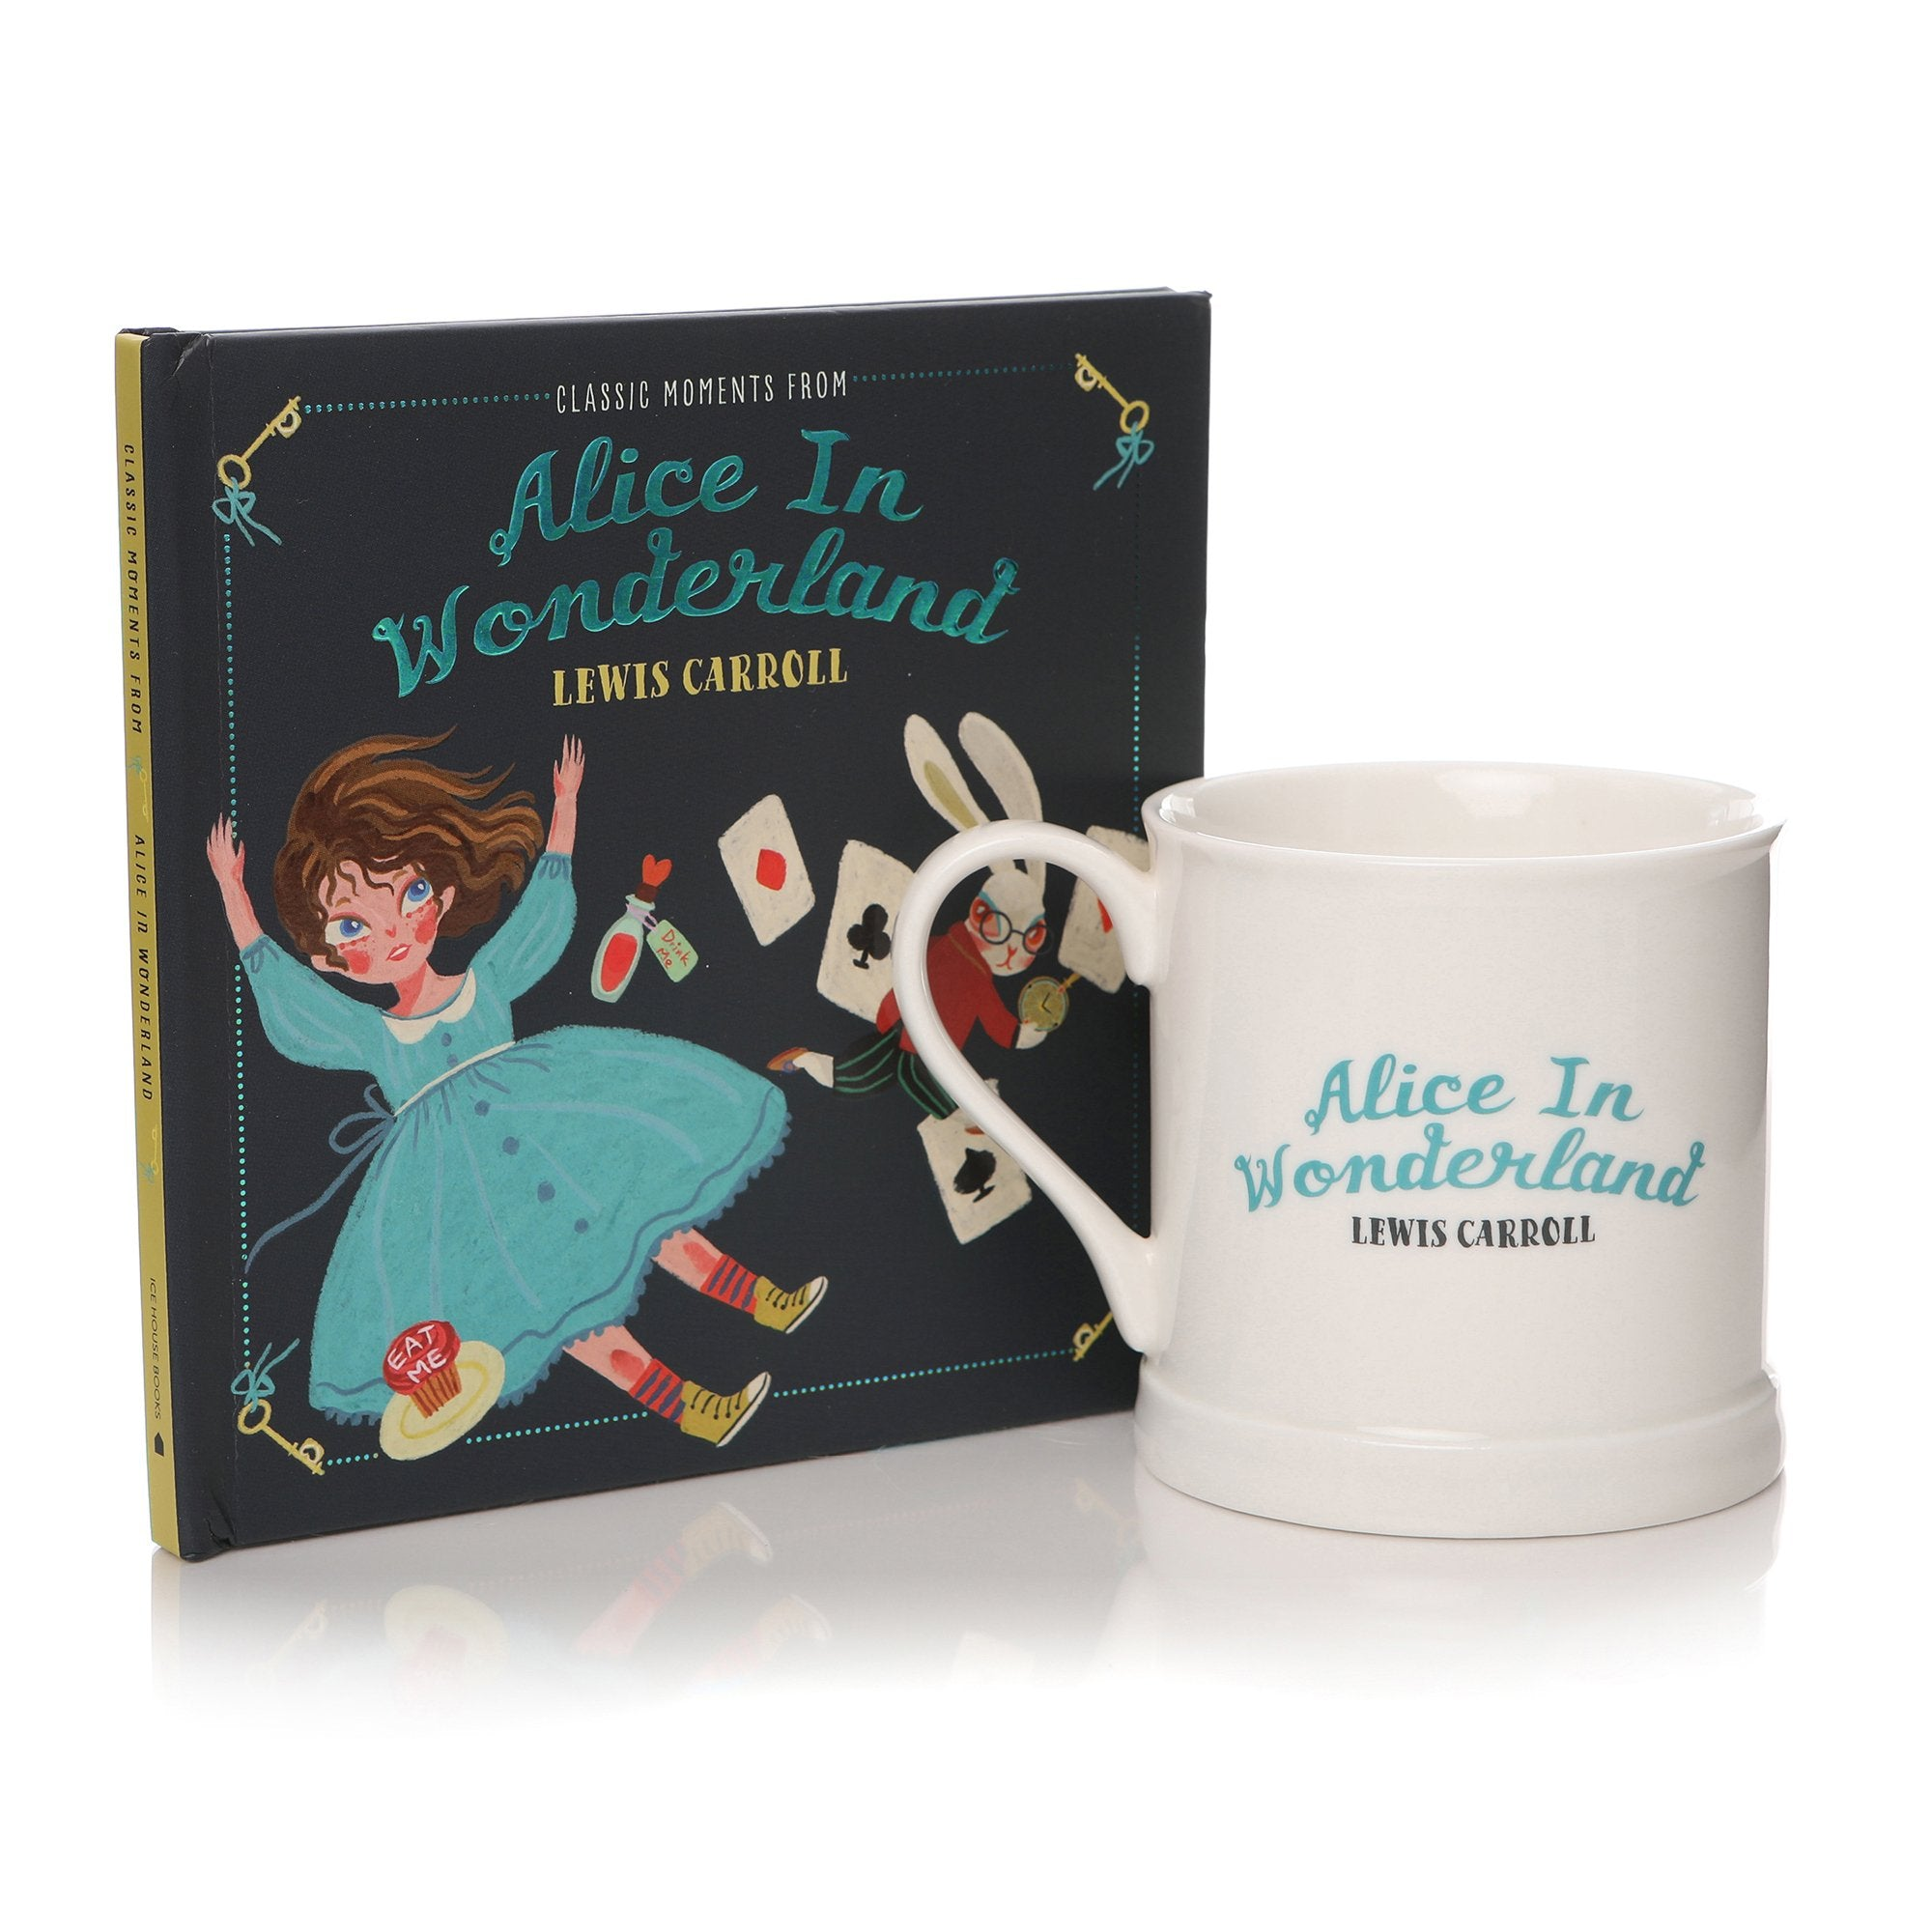 Classic Moments From Alice in Wonderland Book & Mug Gift Set - Half Moon Bay US